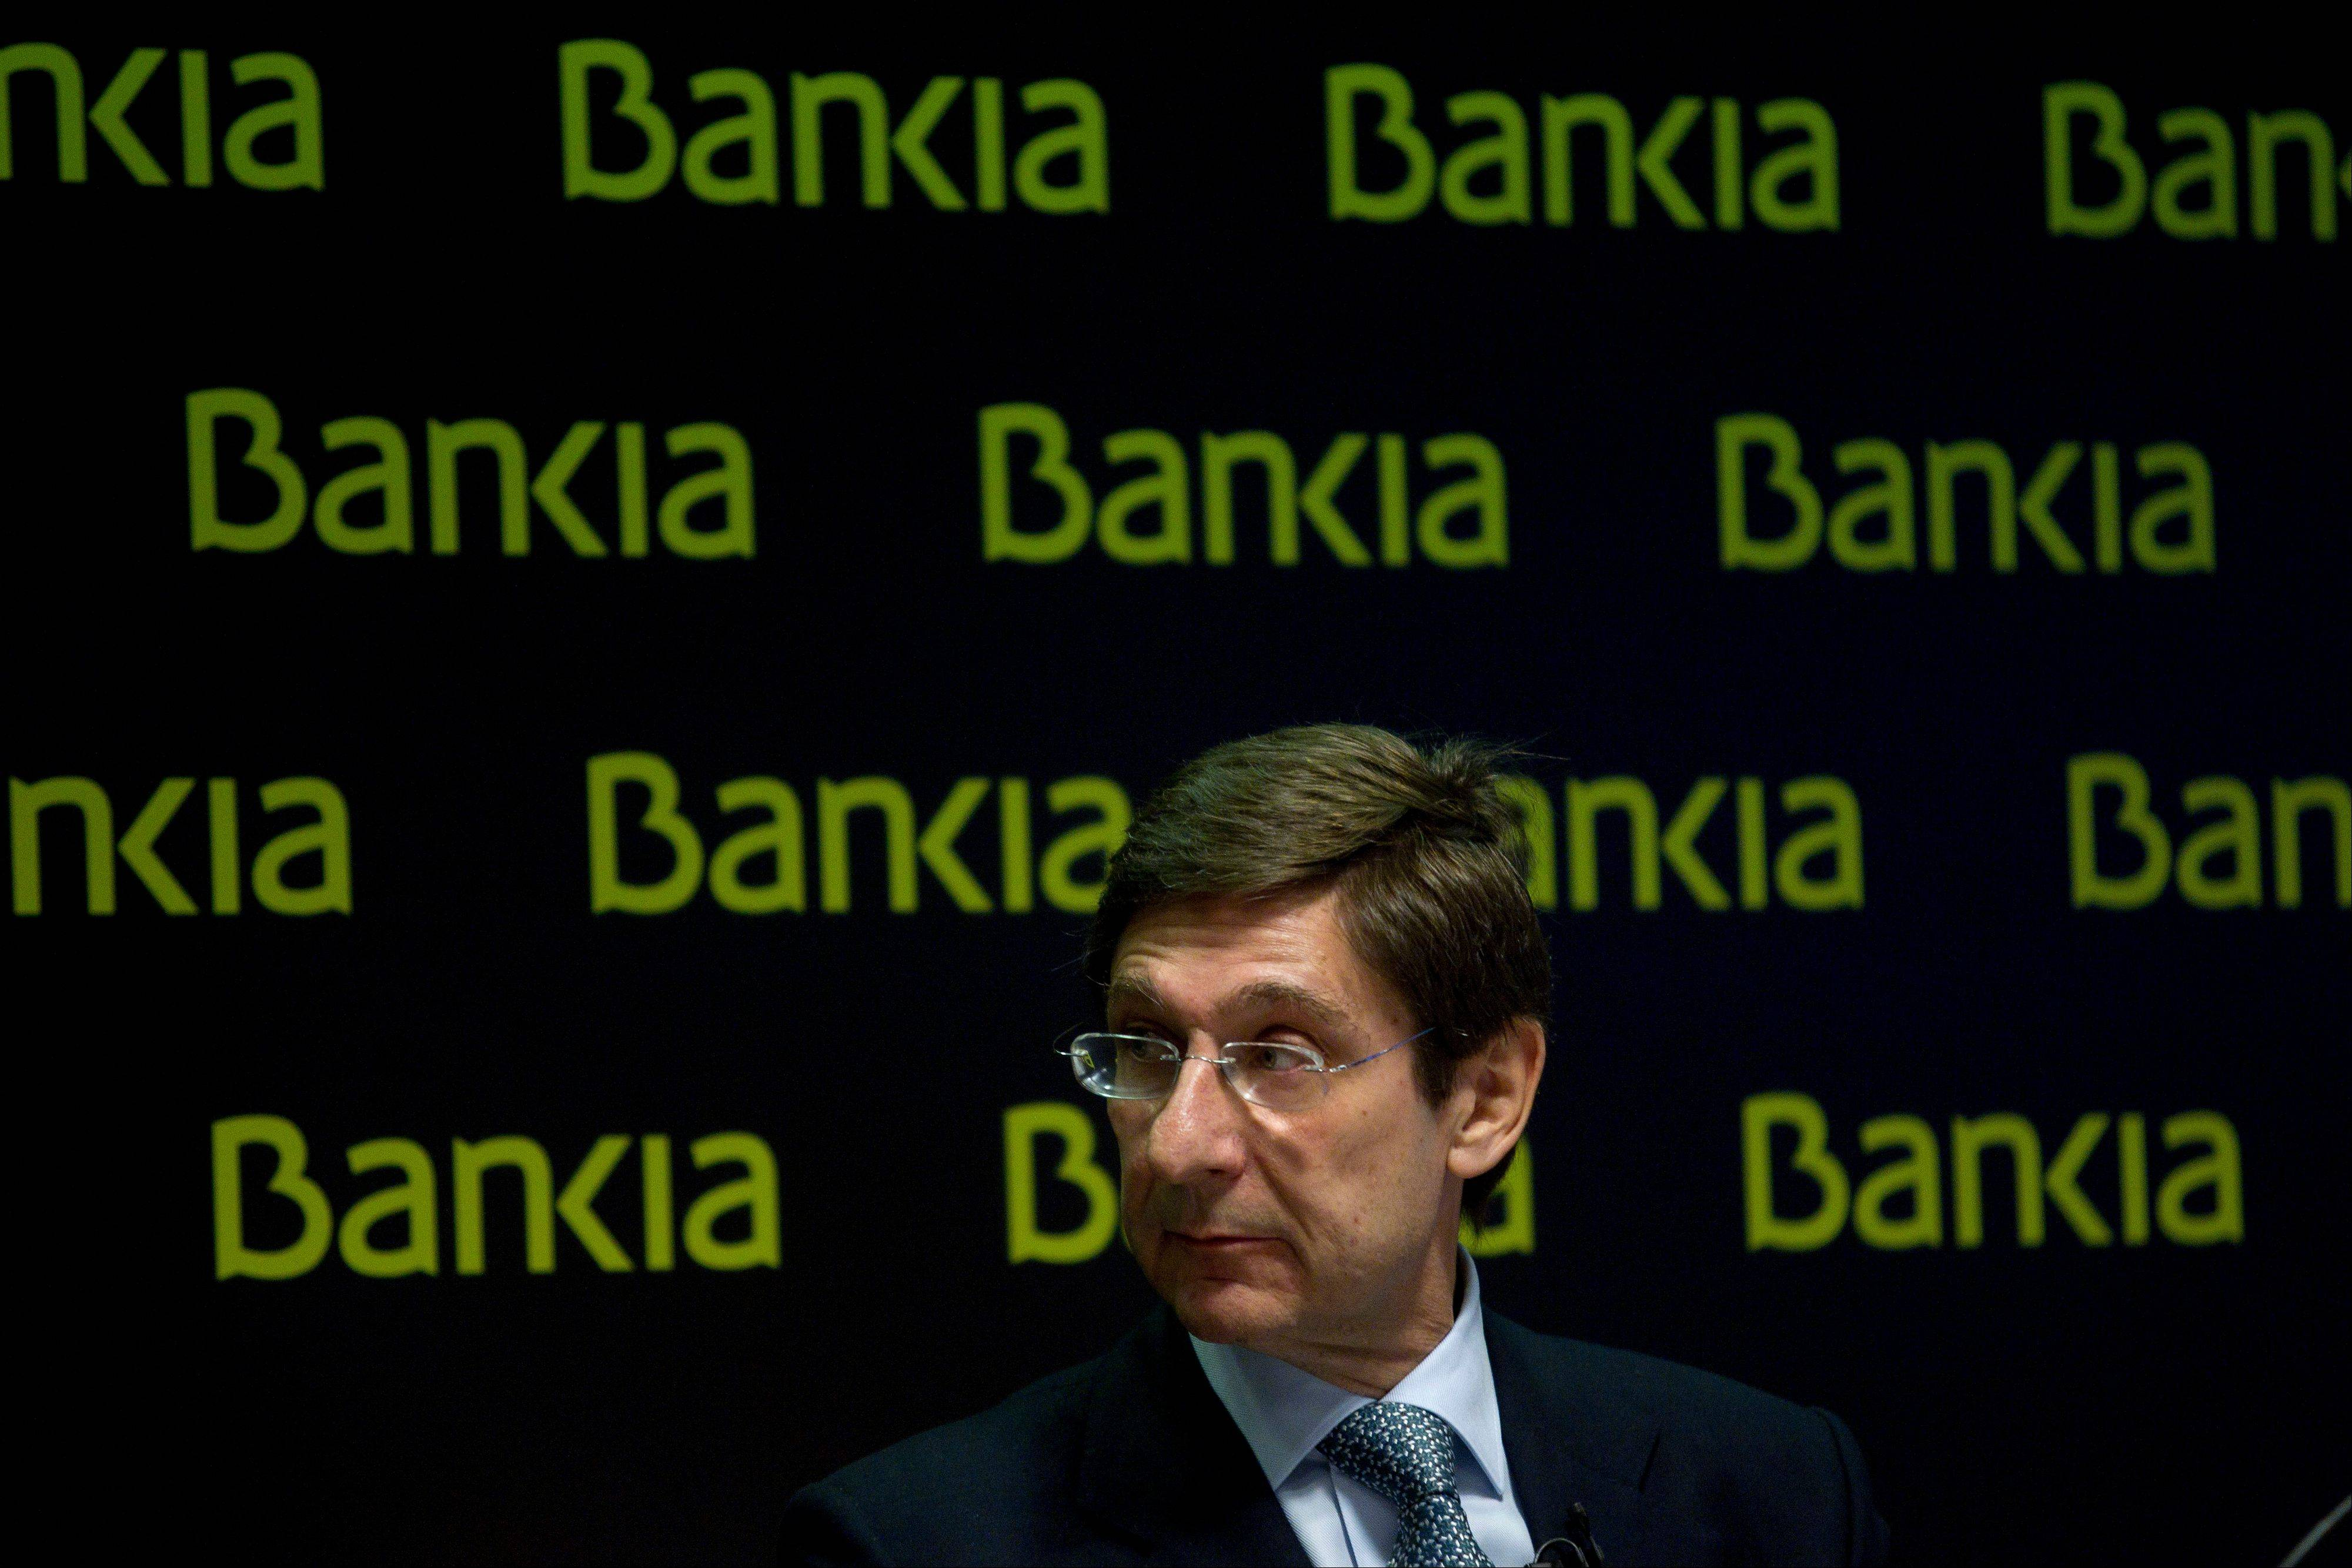 Bankia's president, Jose Ignacio Goirigolzarri, looks to his side during a press conference at the bank's headquarters in Madrid, Saturday. Spain's troubled bank, Bankia, has asked the Spanish government for $23.8 billion in financial support just as a leading credit rating agency downgraded it to junk status. The request came as Standard & Poor's downgraded Bankia and four other Spanish banks to junk status because of uncertainty over restructuring and recapitalization plans.